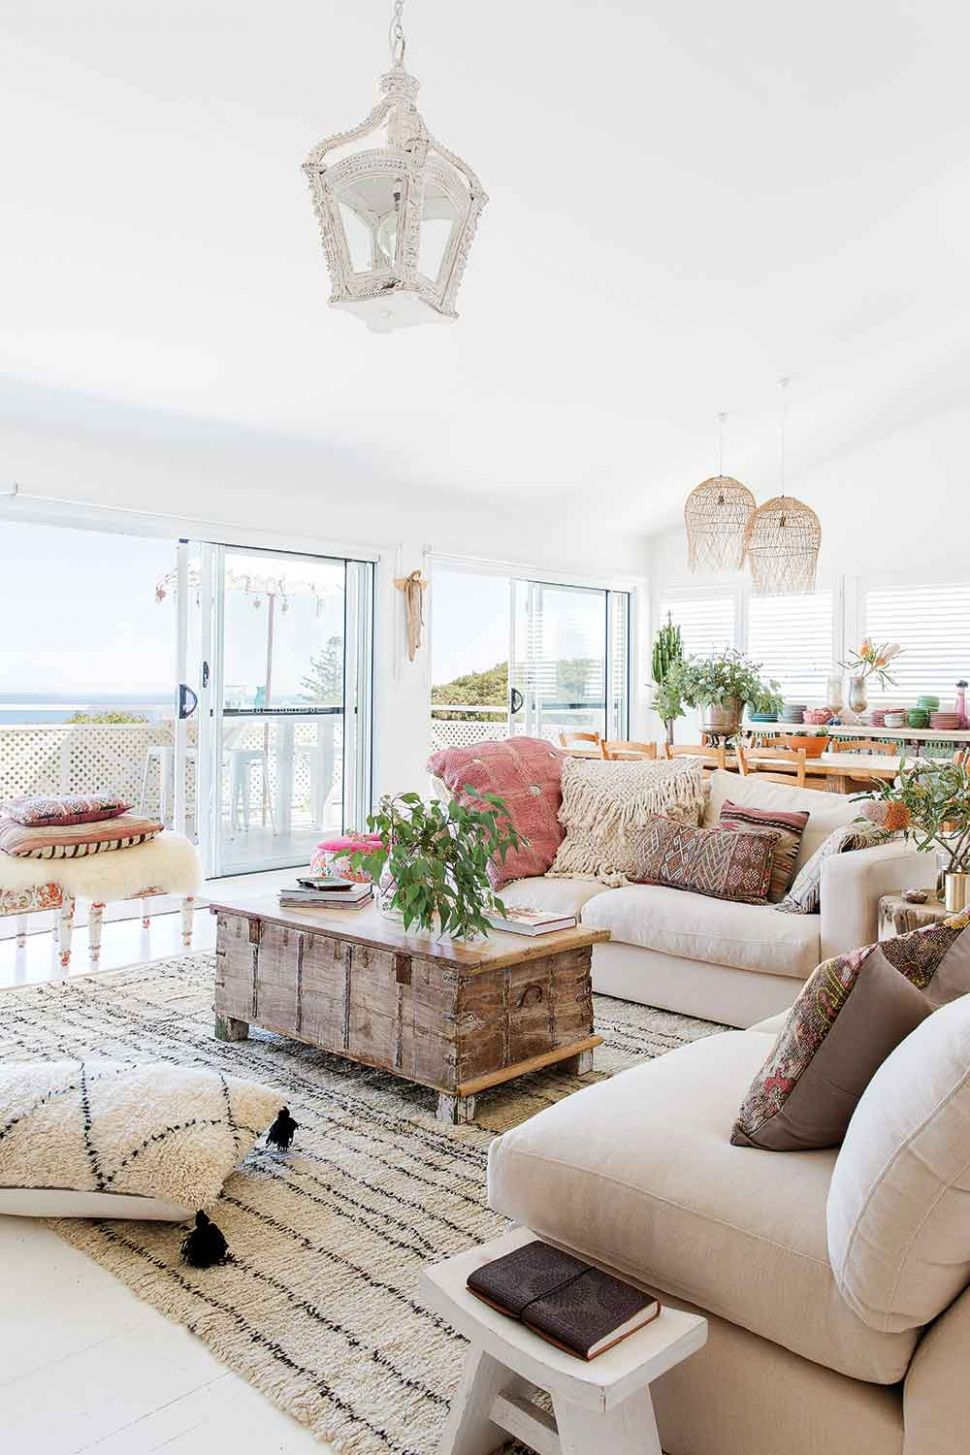 9 of the best ideas for coastal interior decorating | Home ...